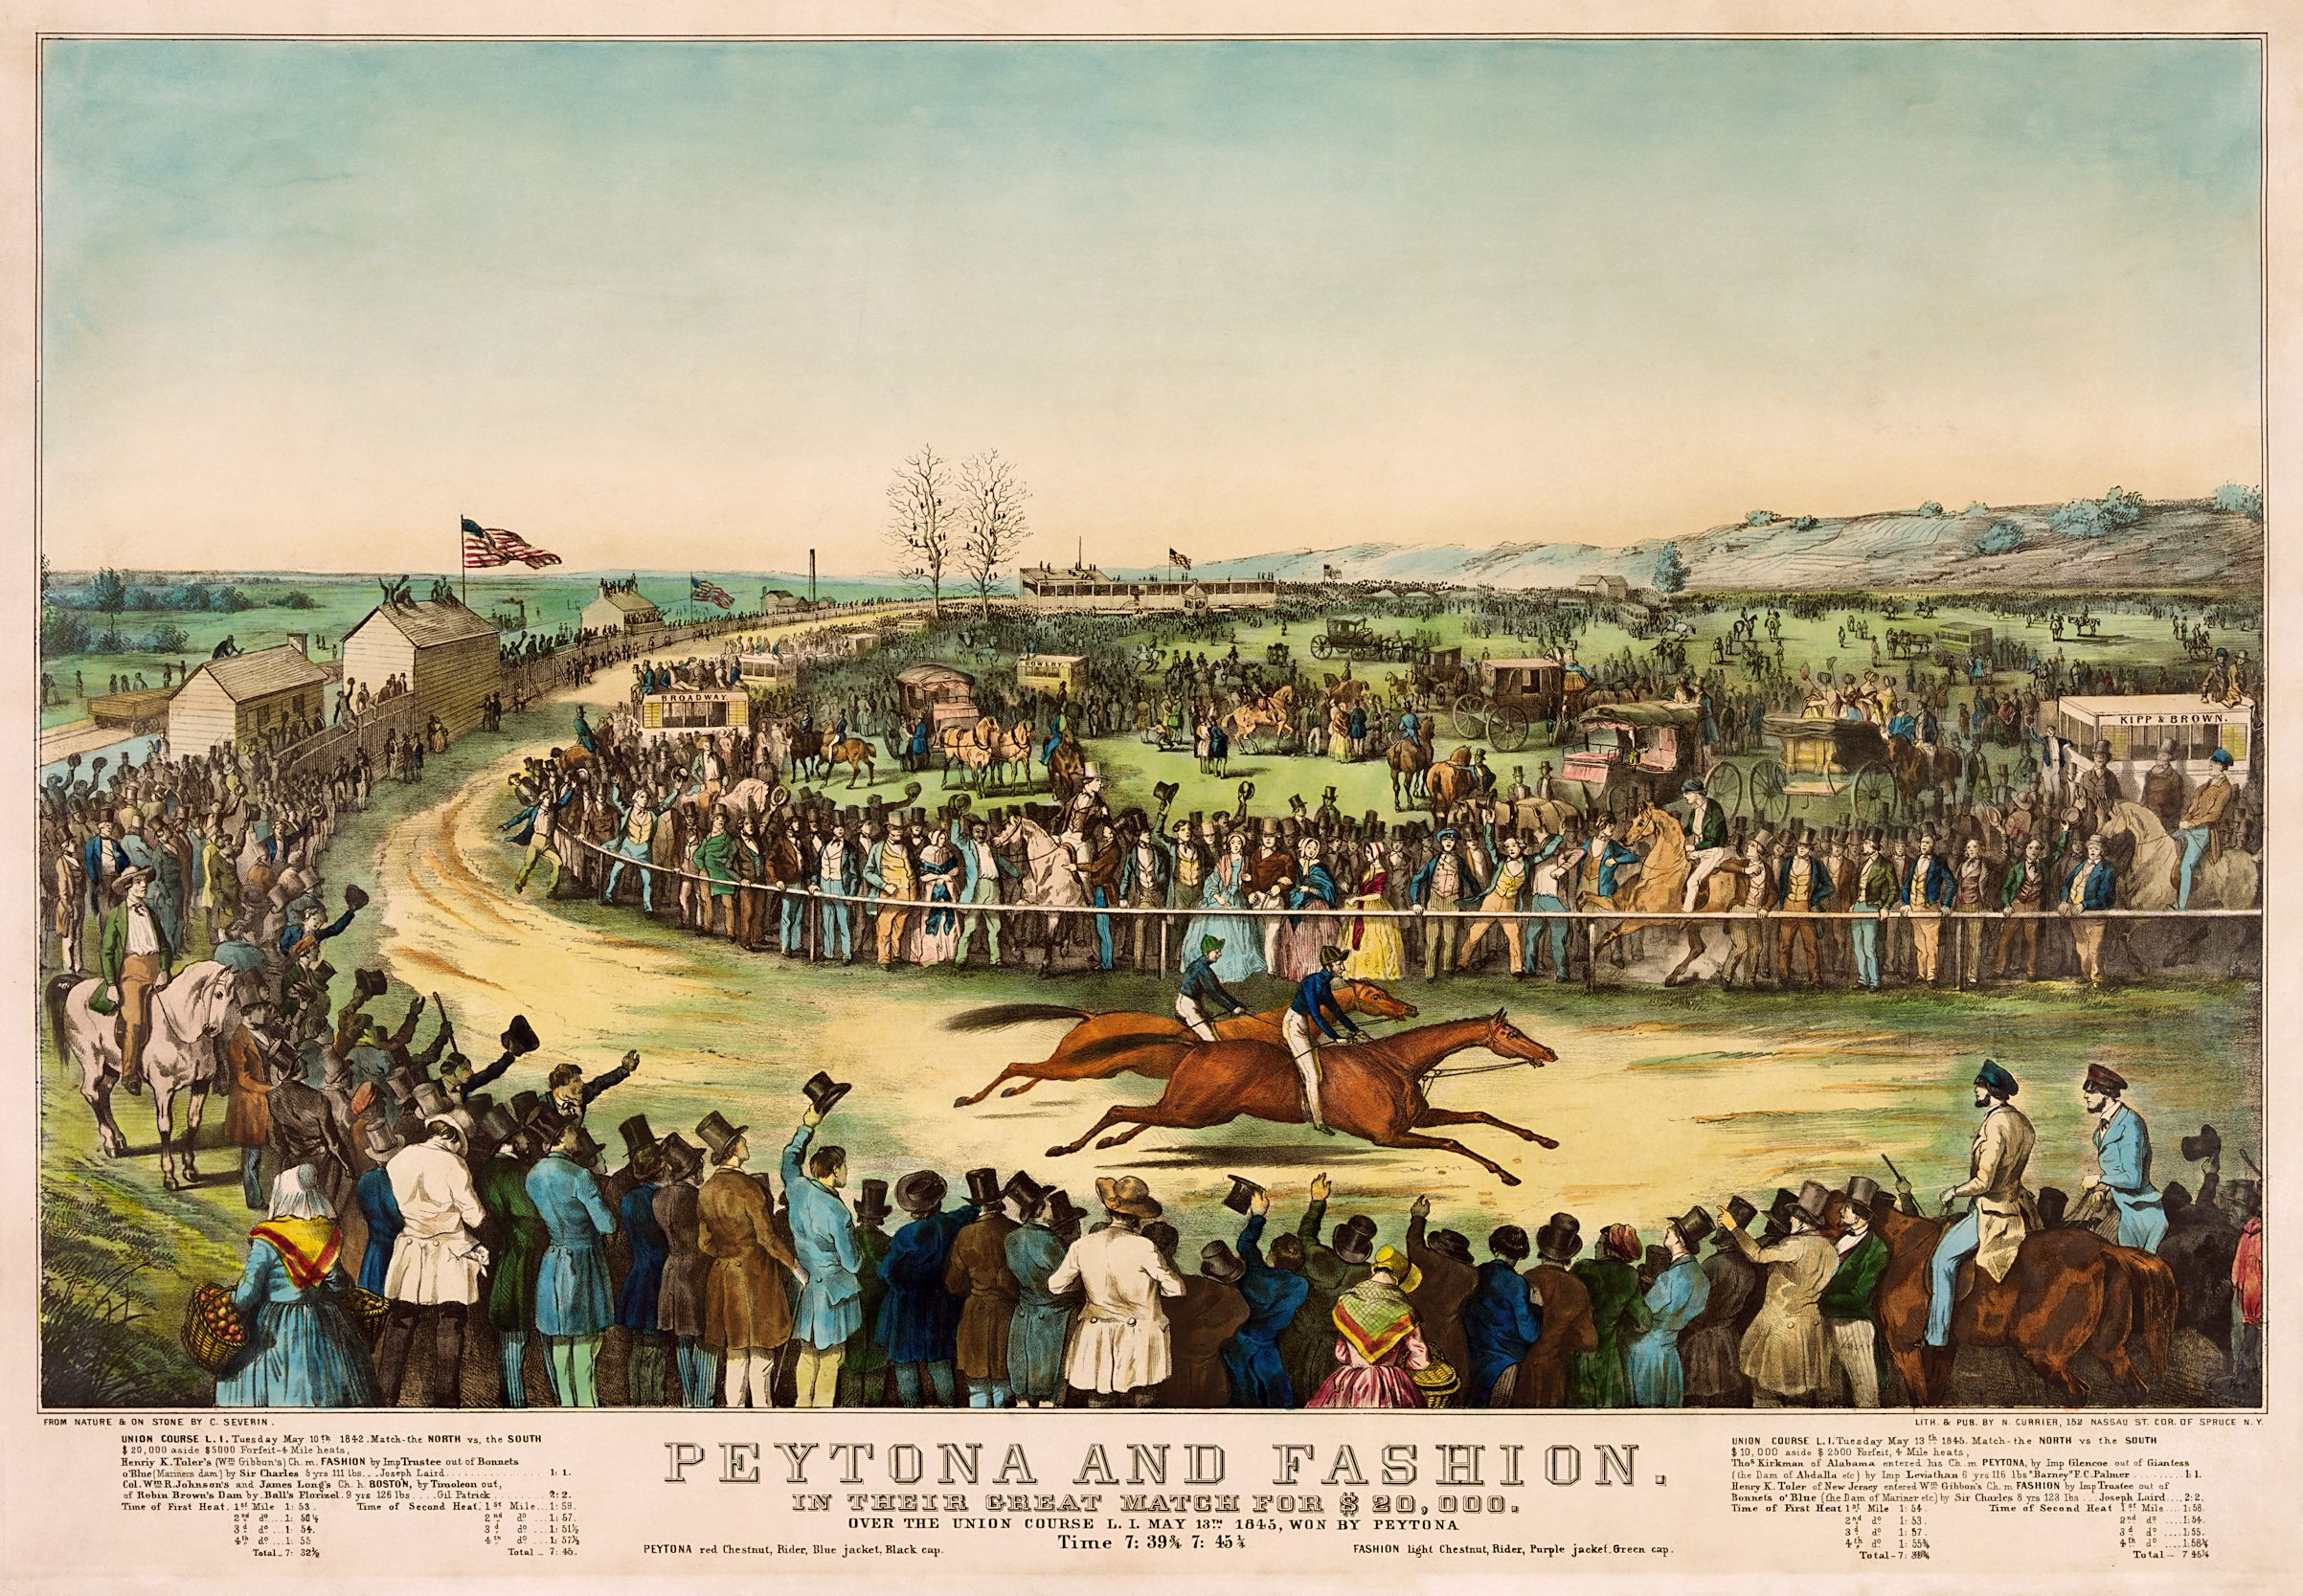 Currier & Ives print depicting the 1845 Great Match between Peytona and Fashion at the Union Course in Long Island, won by Peytona, by artist C. Severin (Museum Collection)